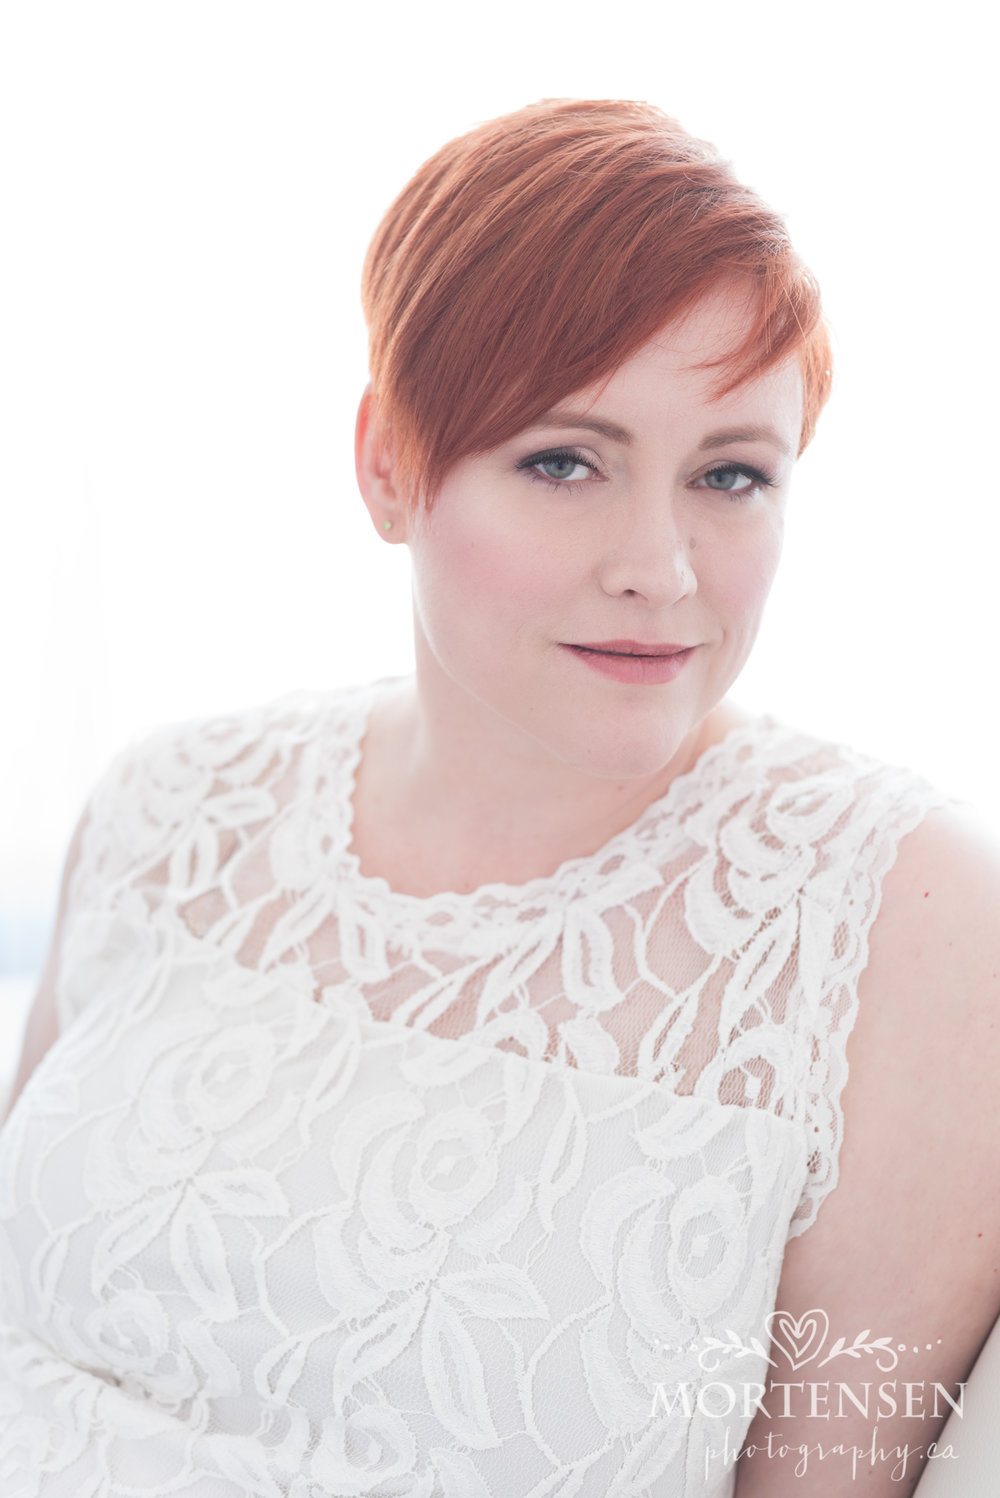 calgary womens glamour beauty portrait photographer yyc professional photography